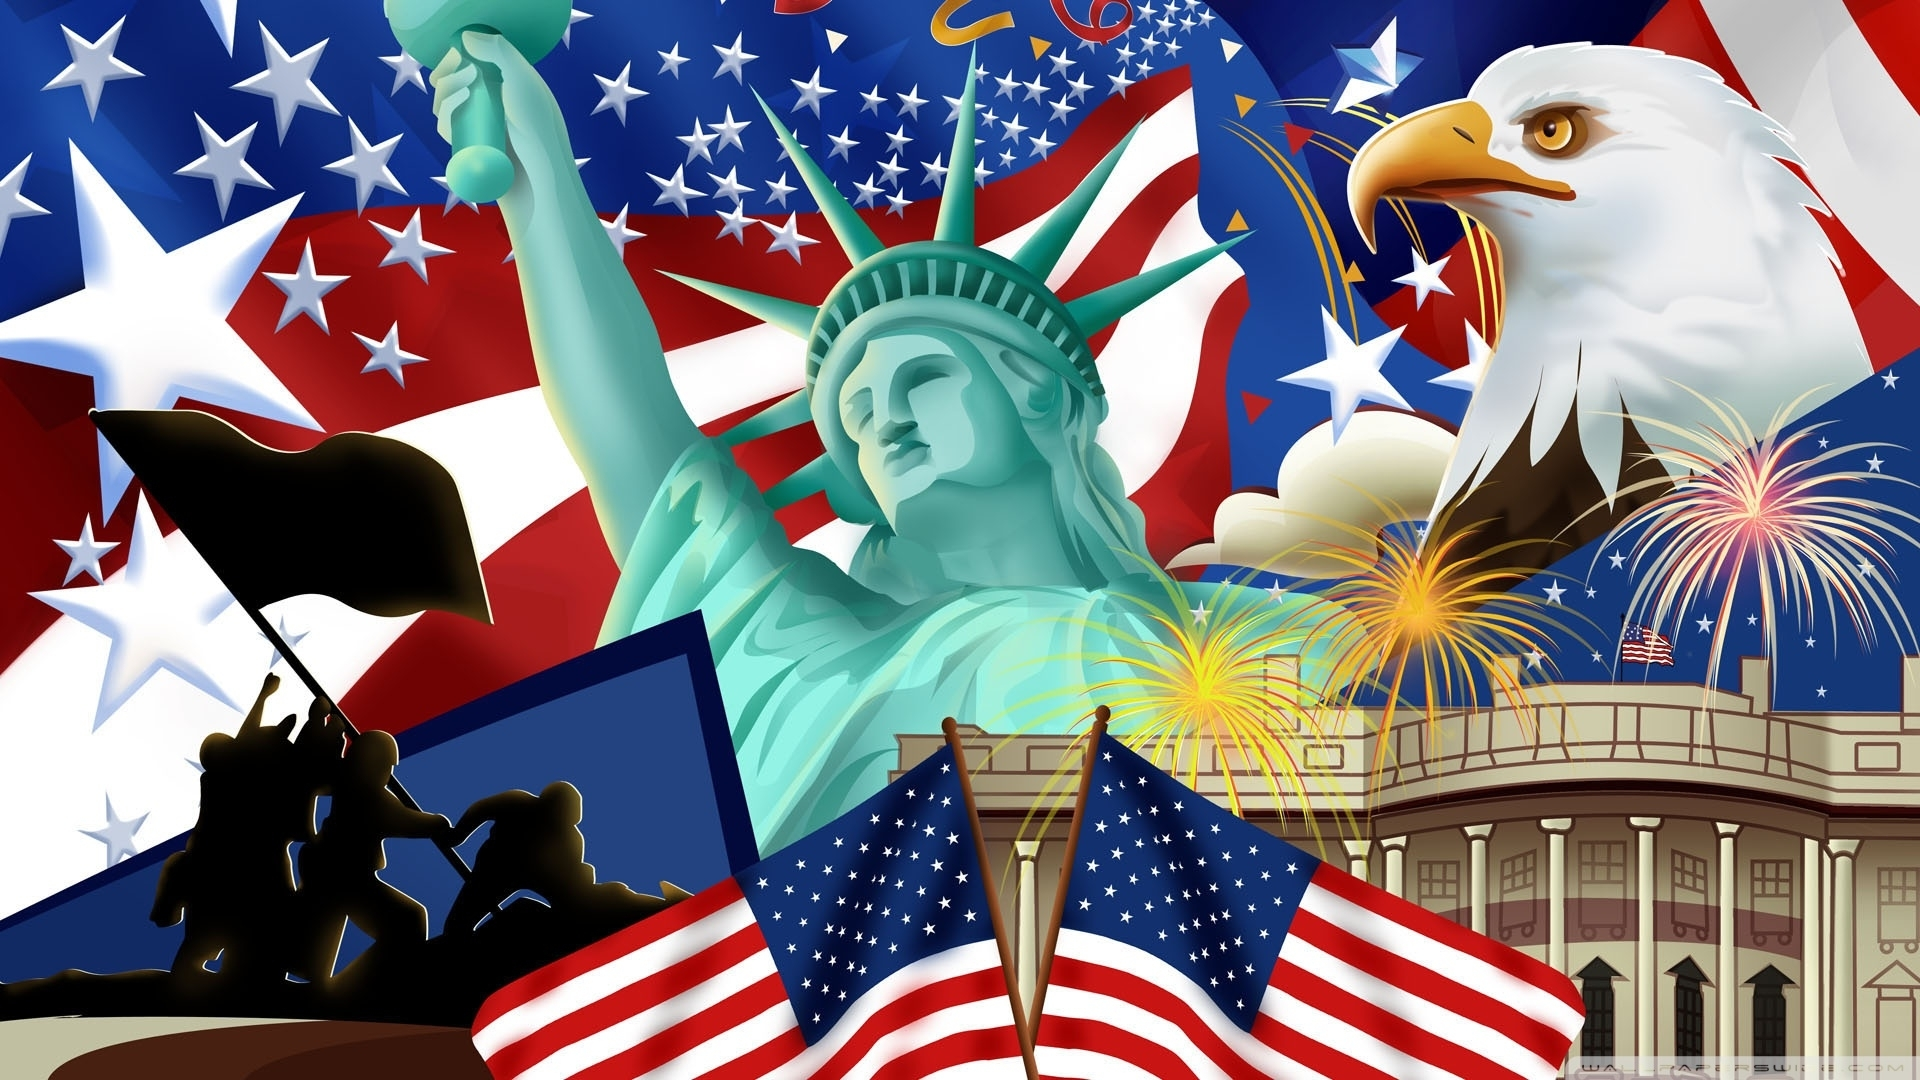 10 Best 4Th Of July Wallpaper FULL HD 1080p For PC Background